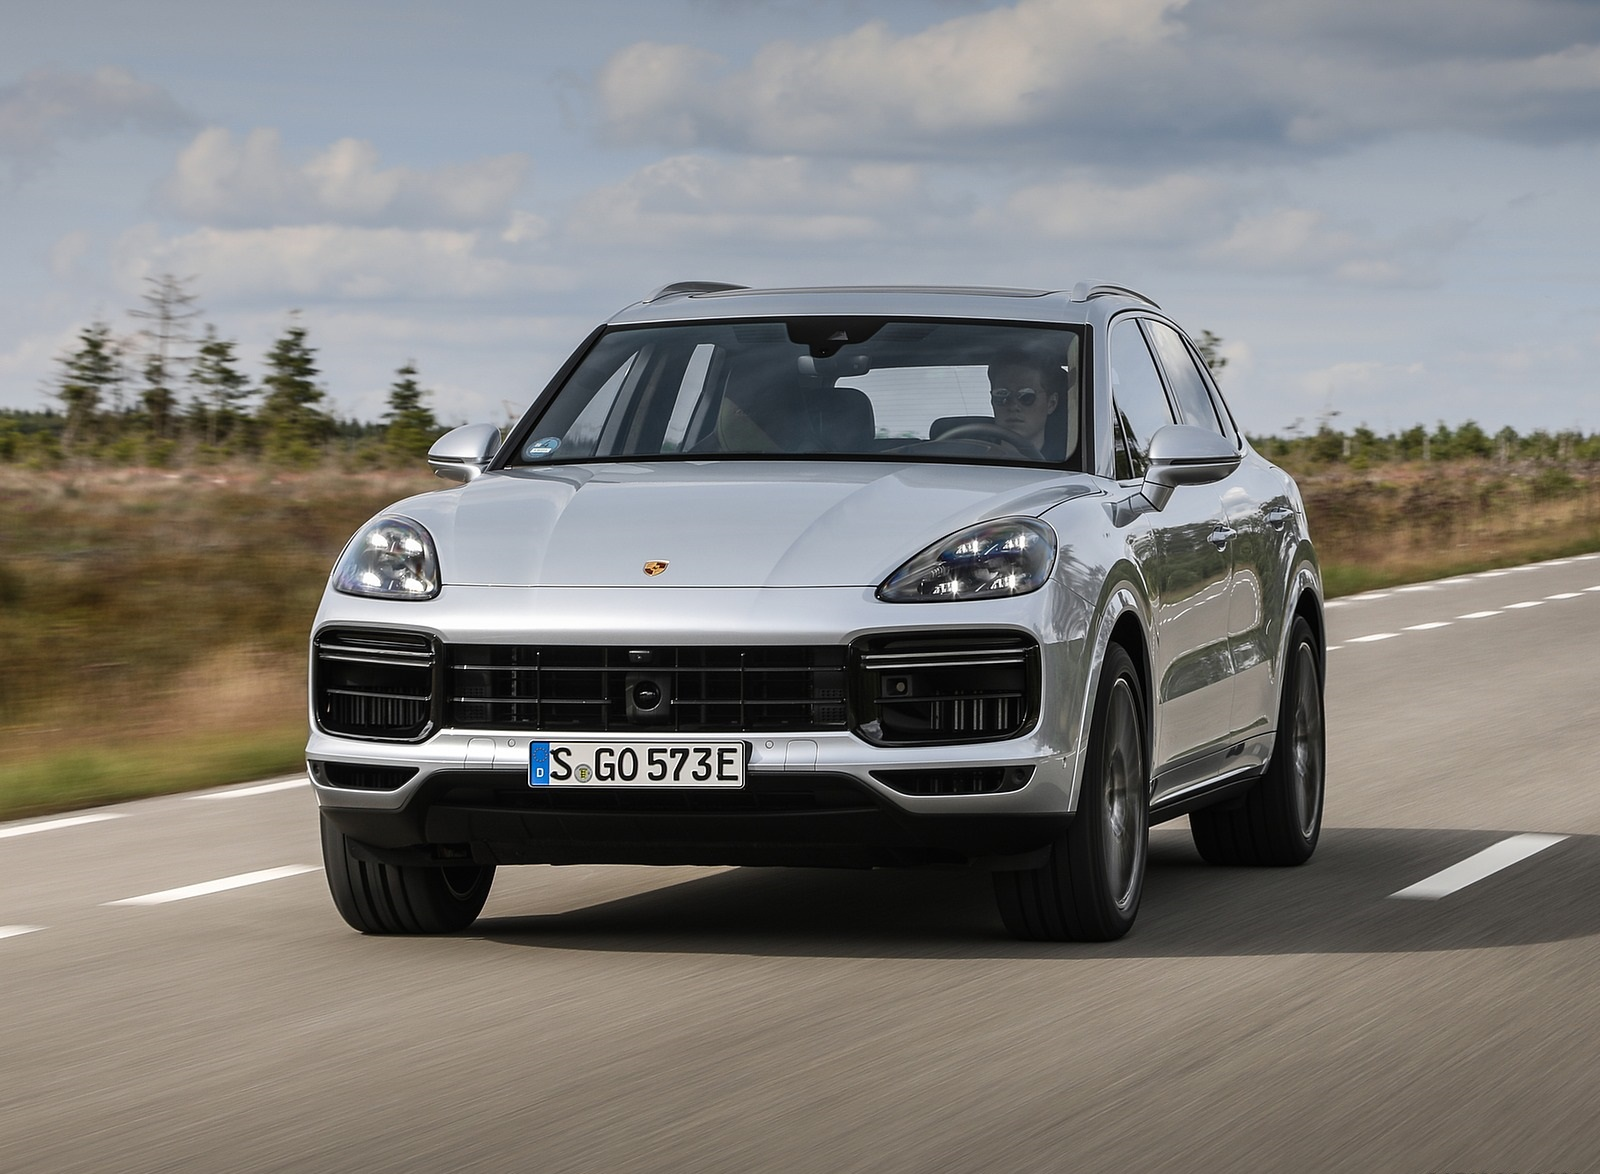 2020 Porsche Cayenne Turbo S E-Hybrid Front Wallpapers (1)